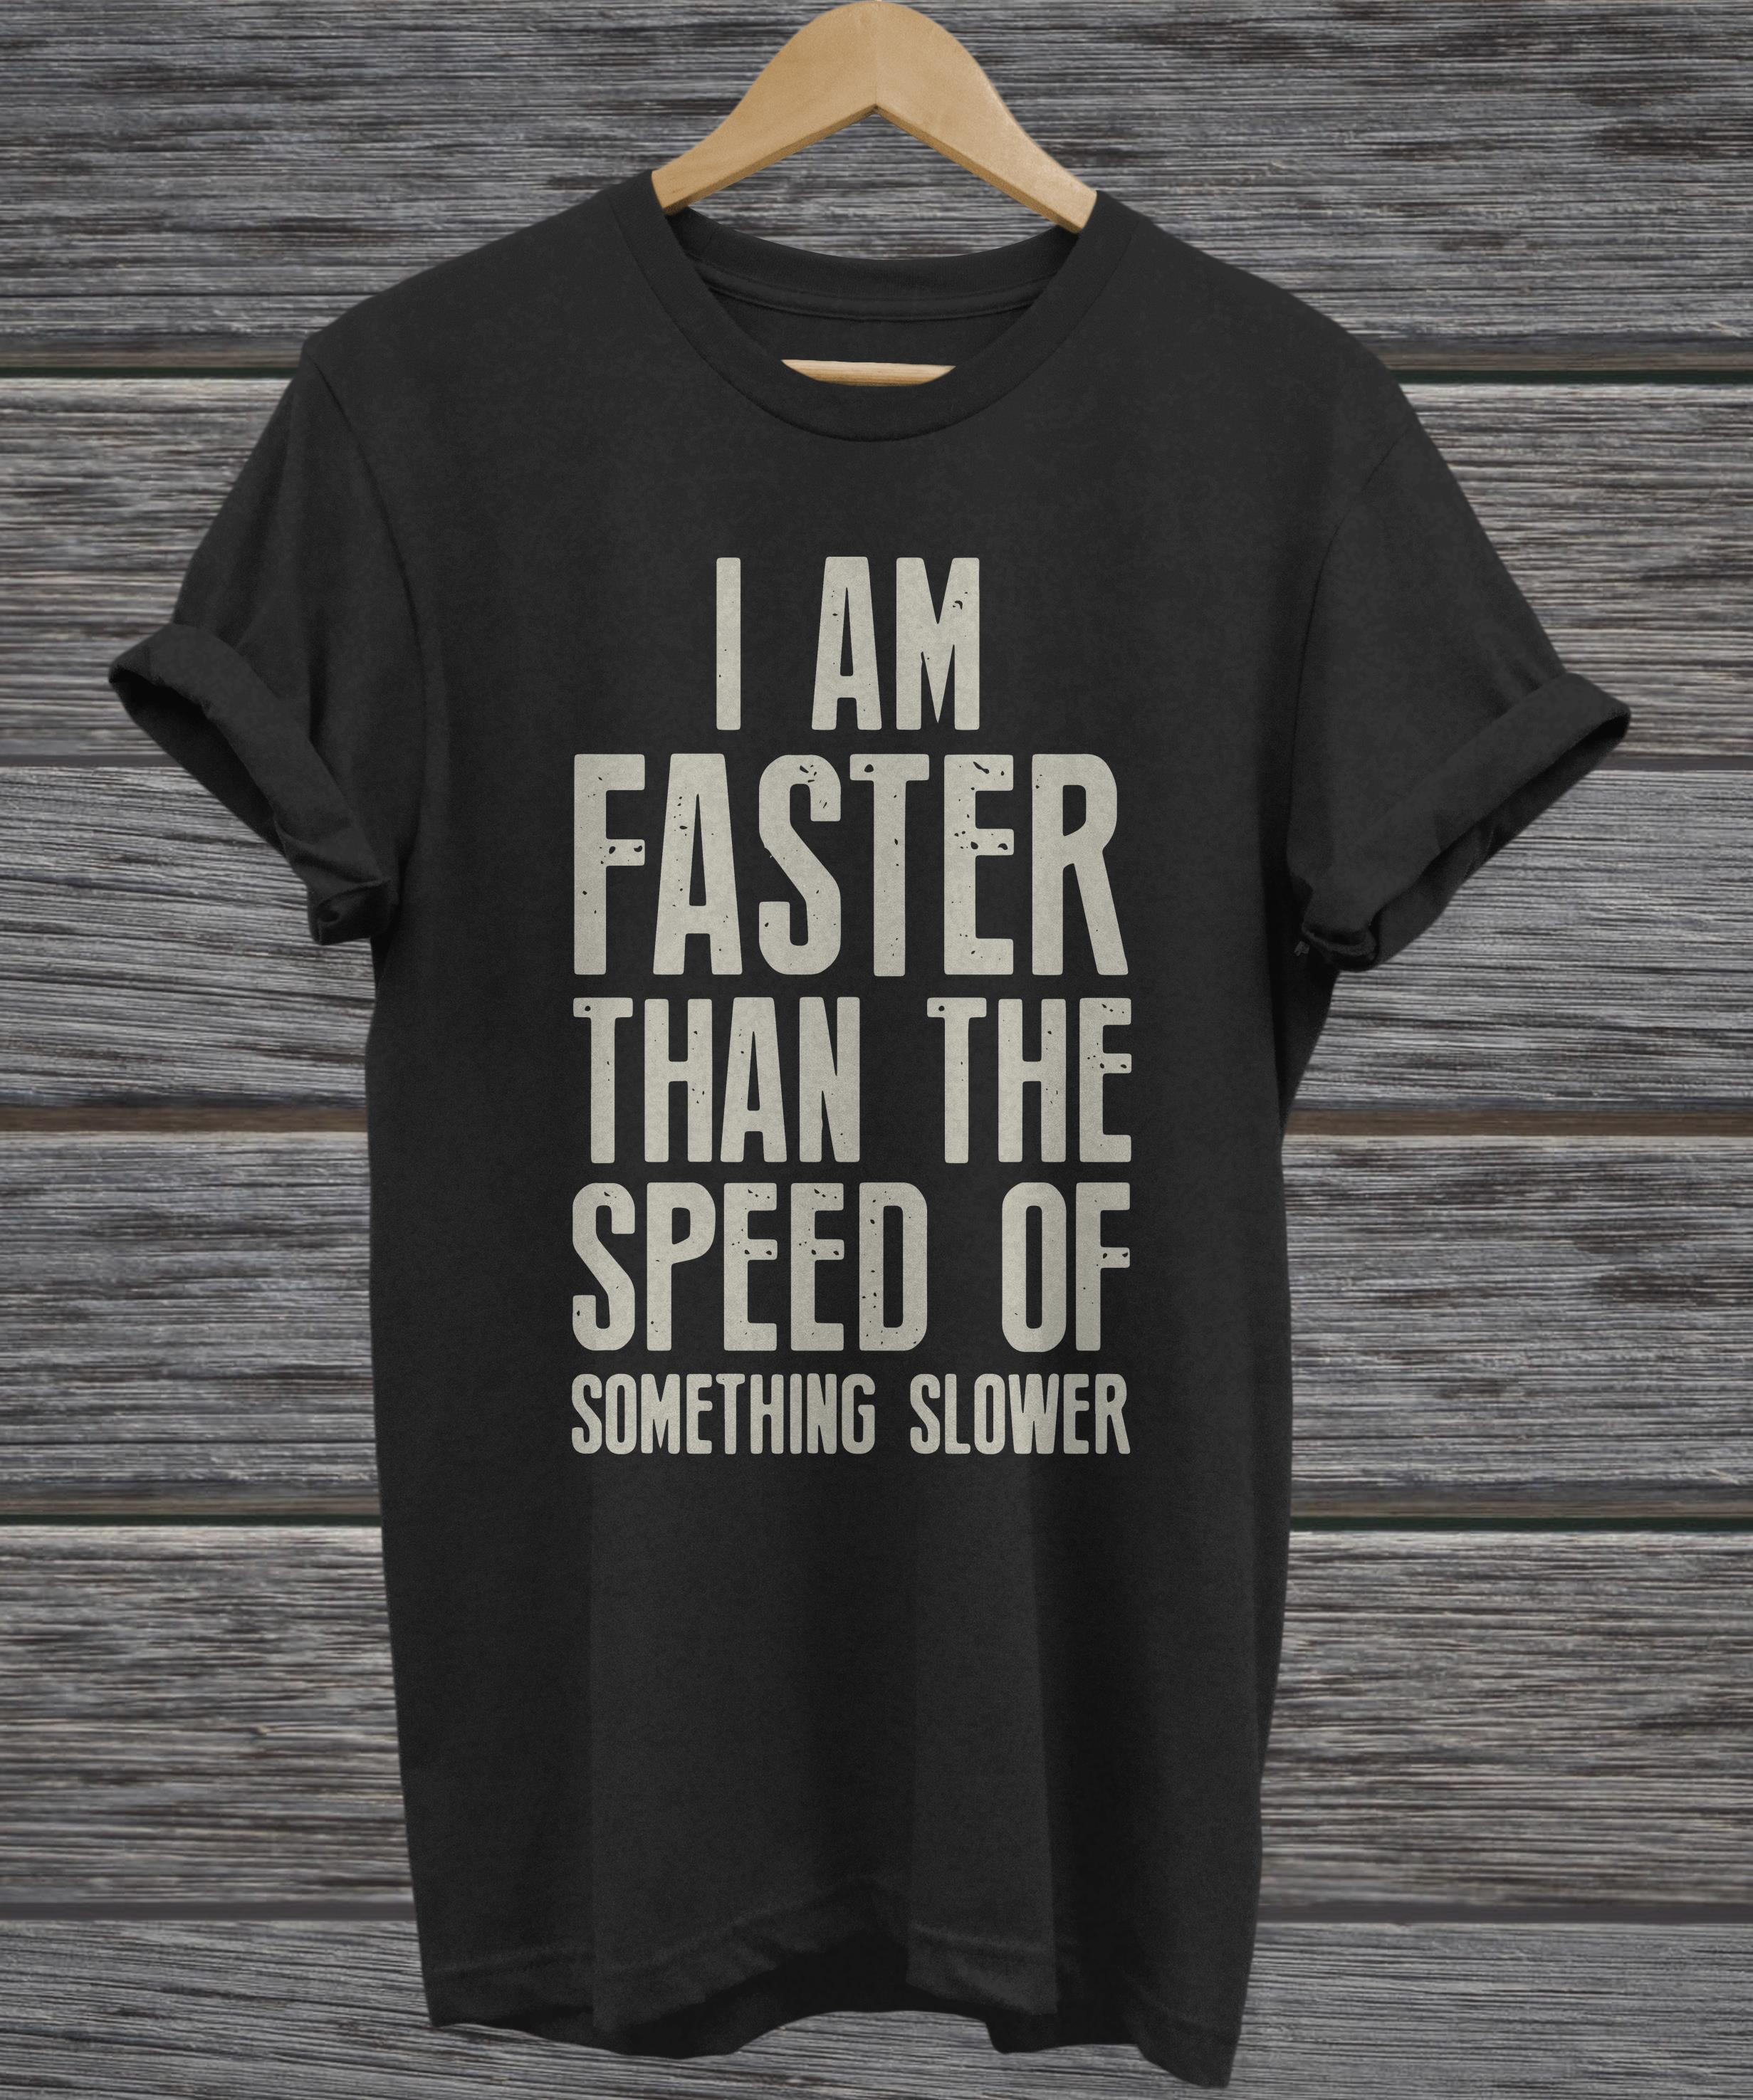 I am faster than the speed of something slower v-neck